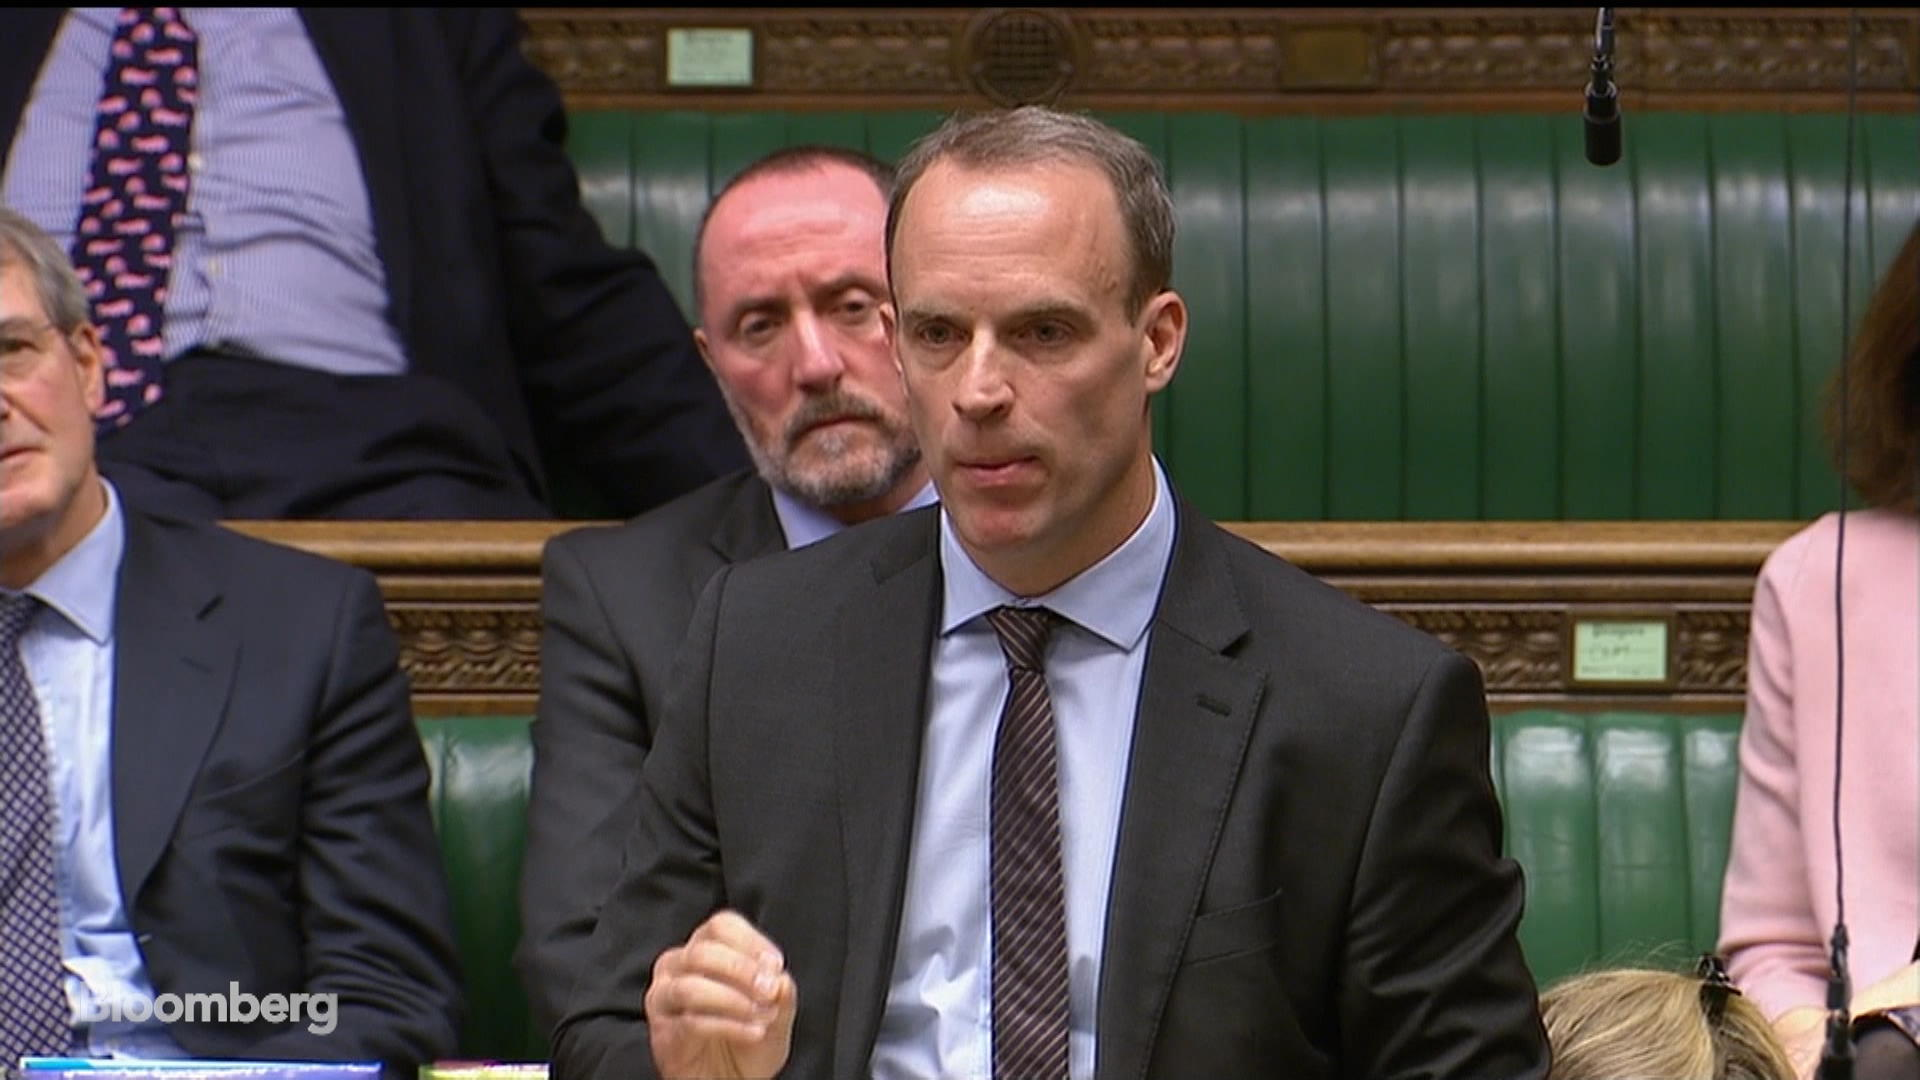 Brexit Hardliner Raab Says He'll Back May's Deal